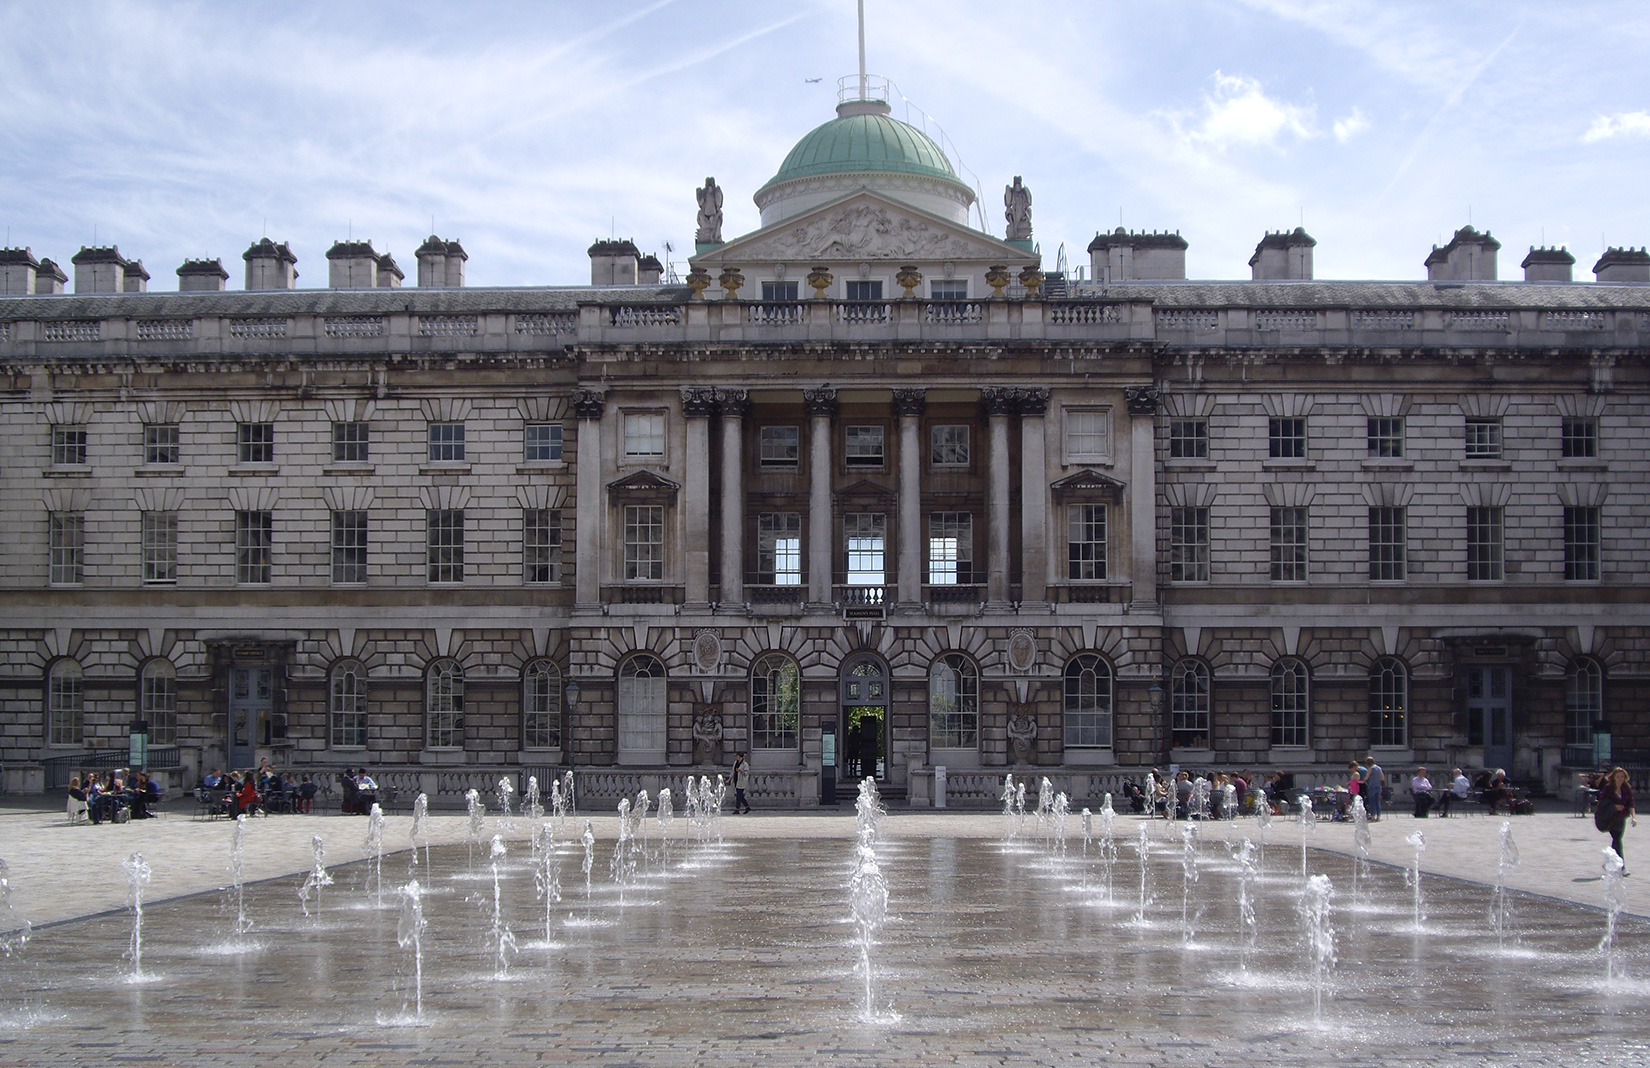 Somerset House on The Strand is set to launch Somerset House studios